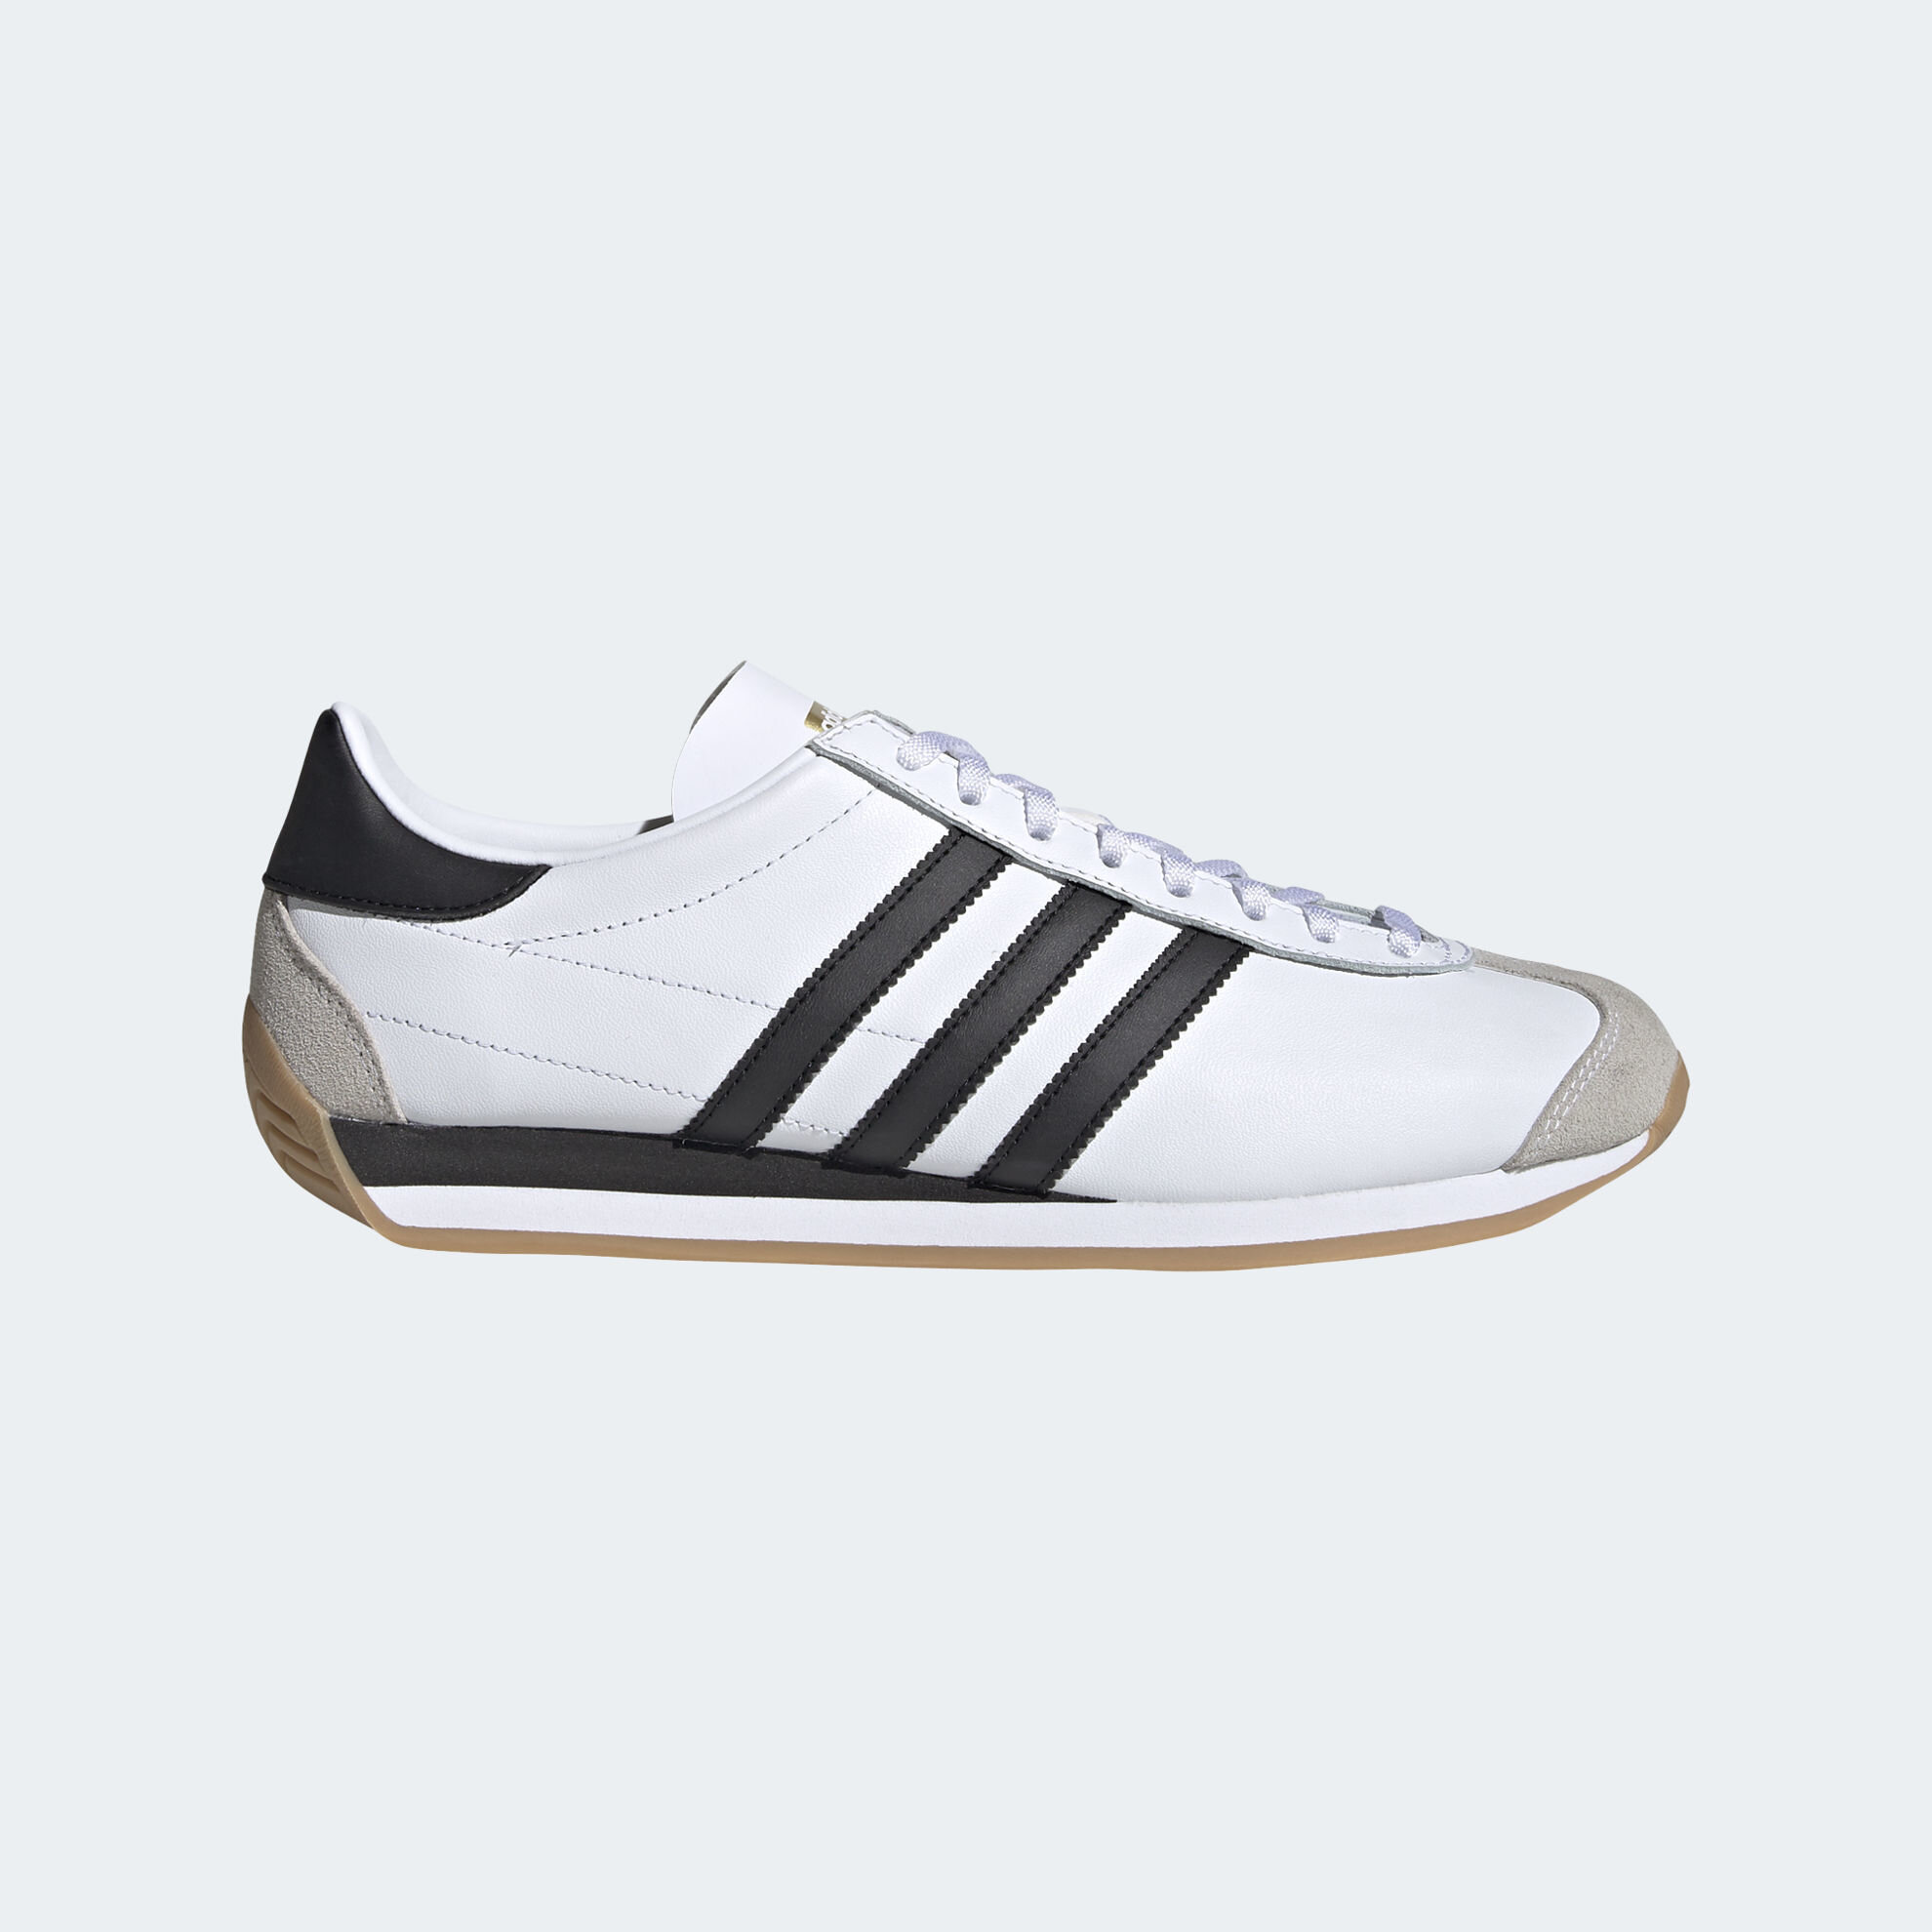 cojo rodillo Escrupuloso  adidas Country OG Shoes | Running shoes, sportswear at Adidas official  website | Adidas IL